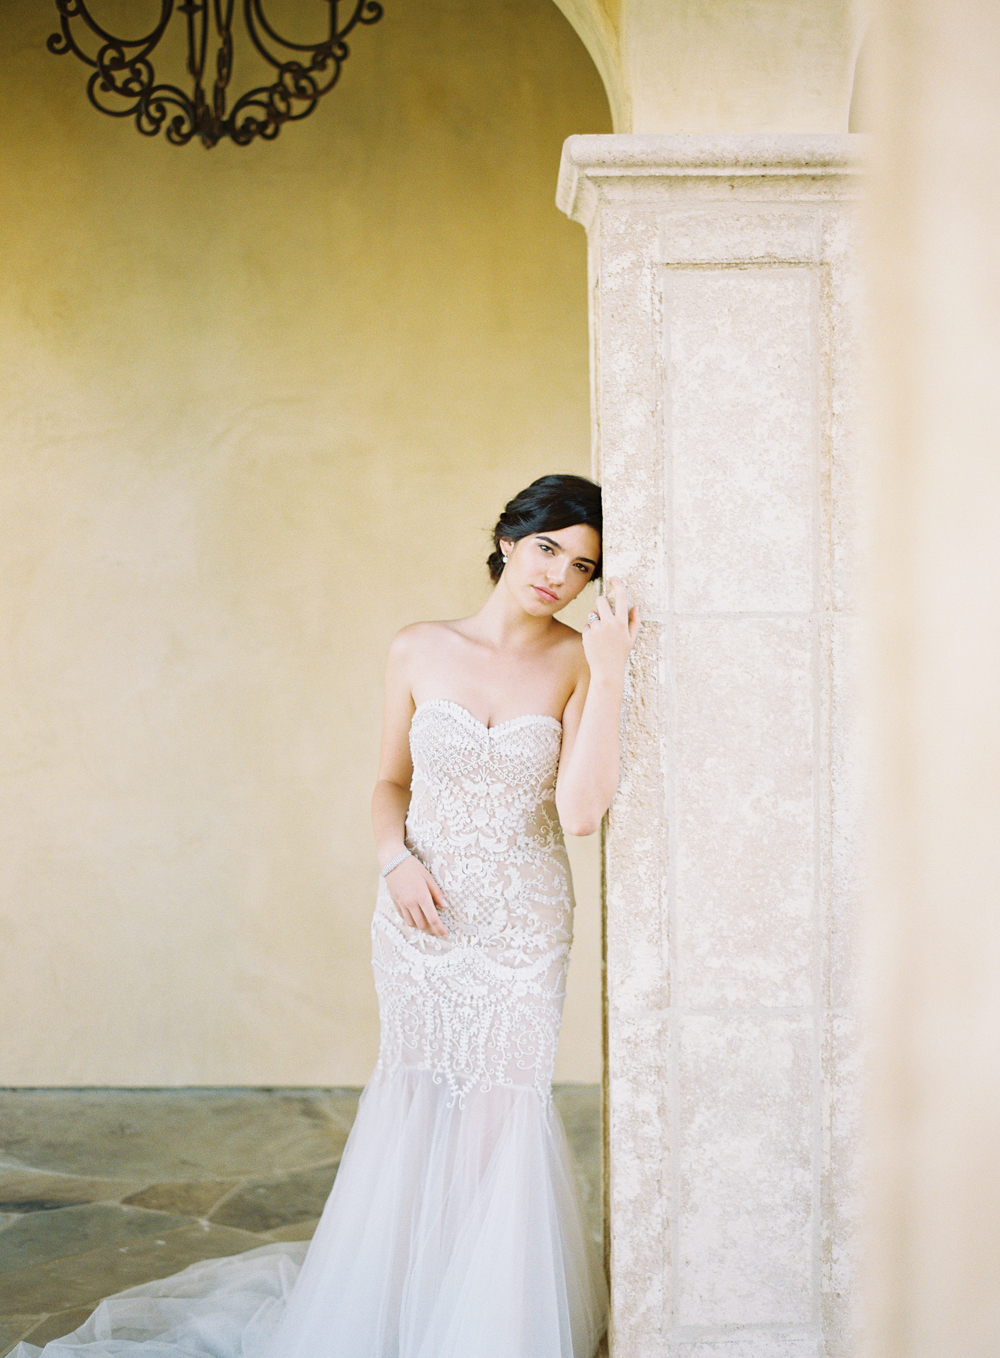 Sachin and Babi wedding gown | Mbride | Beauty by Stacey | Luxury wedding | Hidden Castle | Rancho Santa Fe | Estate Events with Venuelust | neutral wedding | European Wedding Inspiration | French wedding | France wedding photographer | Southern California film photographer | San Diego wedding photographer | Whiskers and Willow Photography